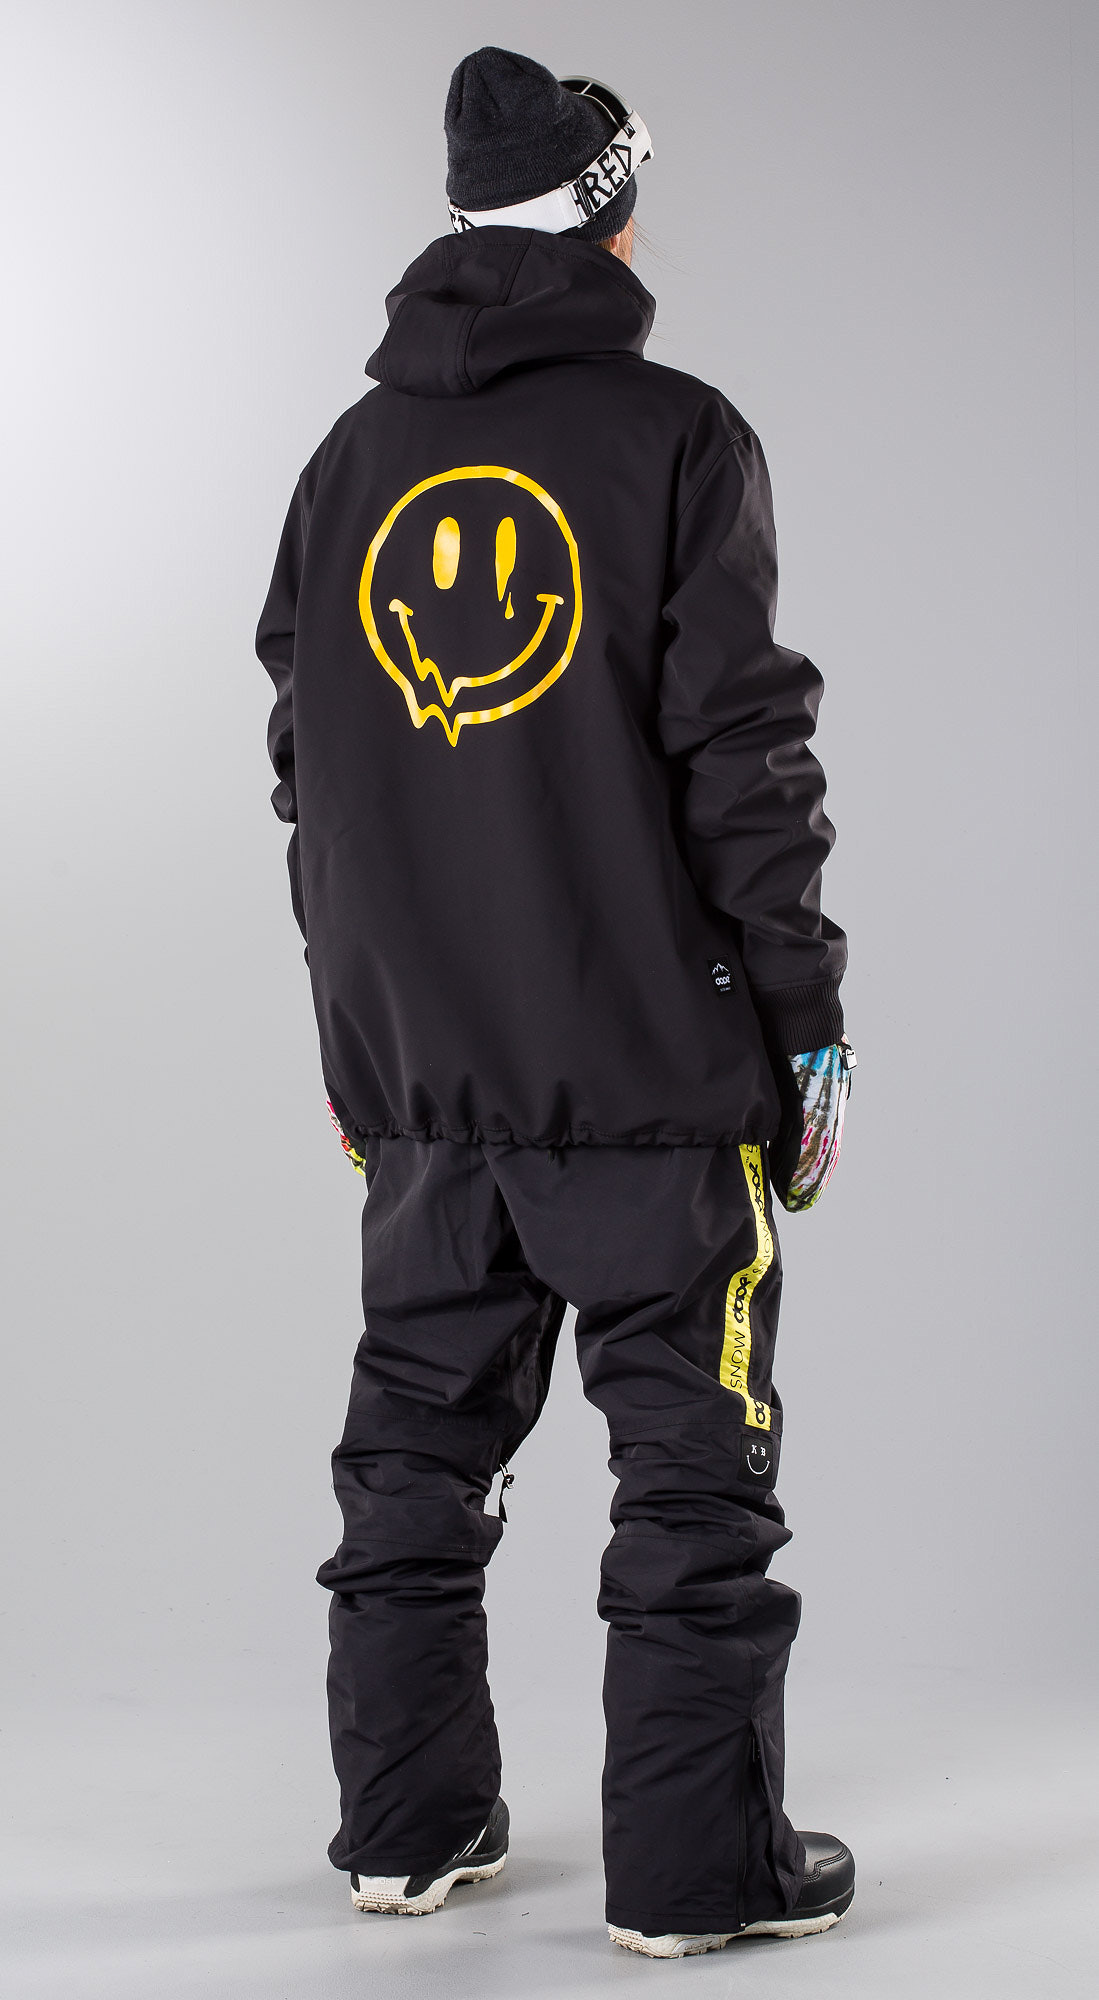 bbd23d8467 Men's Snowboard Clothing | Fast & Free Delivery | RIDESTORE